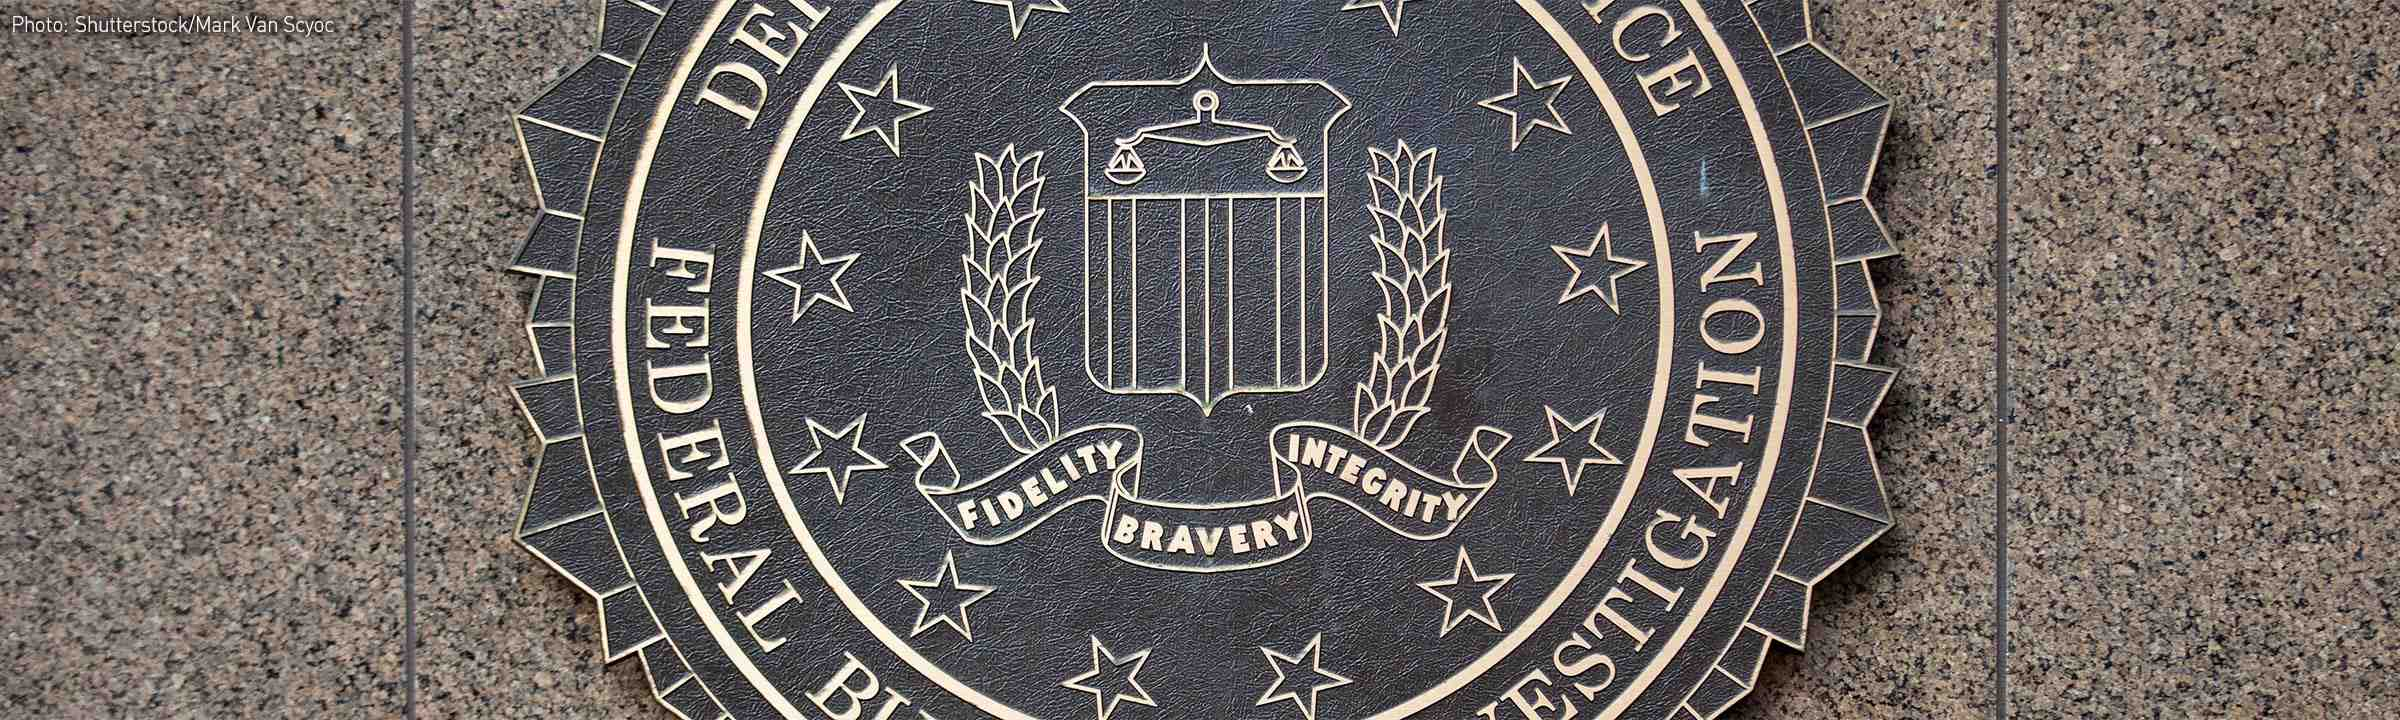 the history and criticism surrounding the american federal bureau of investigation fbi The federal bureau of investigation abroad the beginning of the fbi's work abroad can be traced back to world war ii in 1940, as the war intensified and the prospect of the united states.